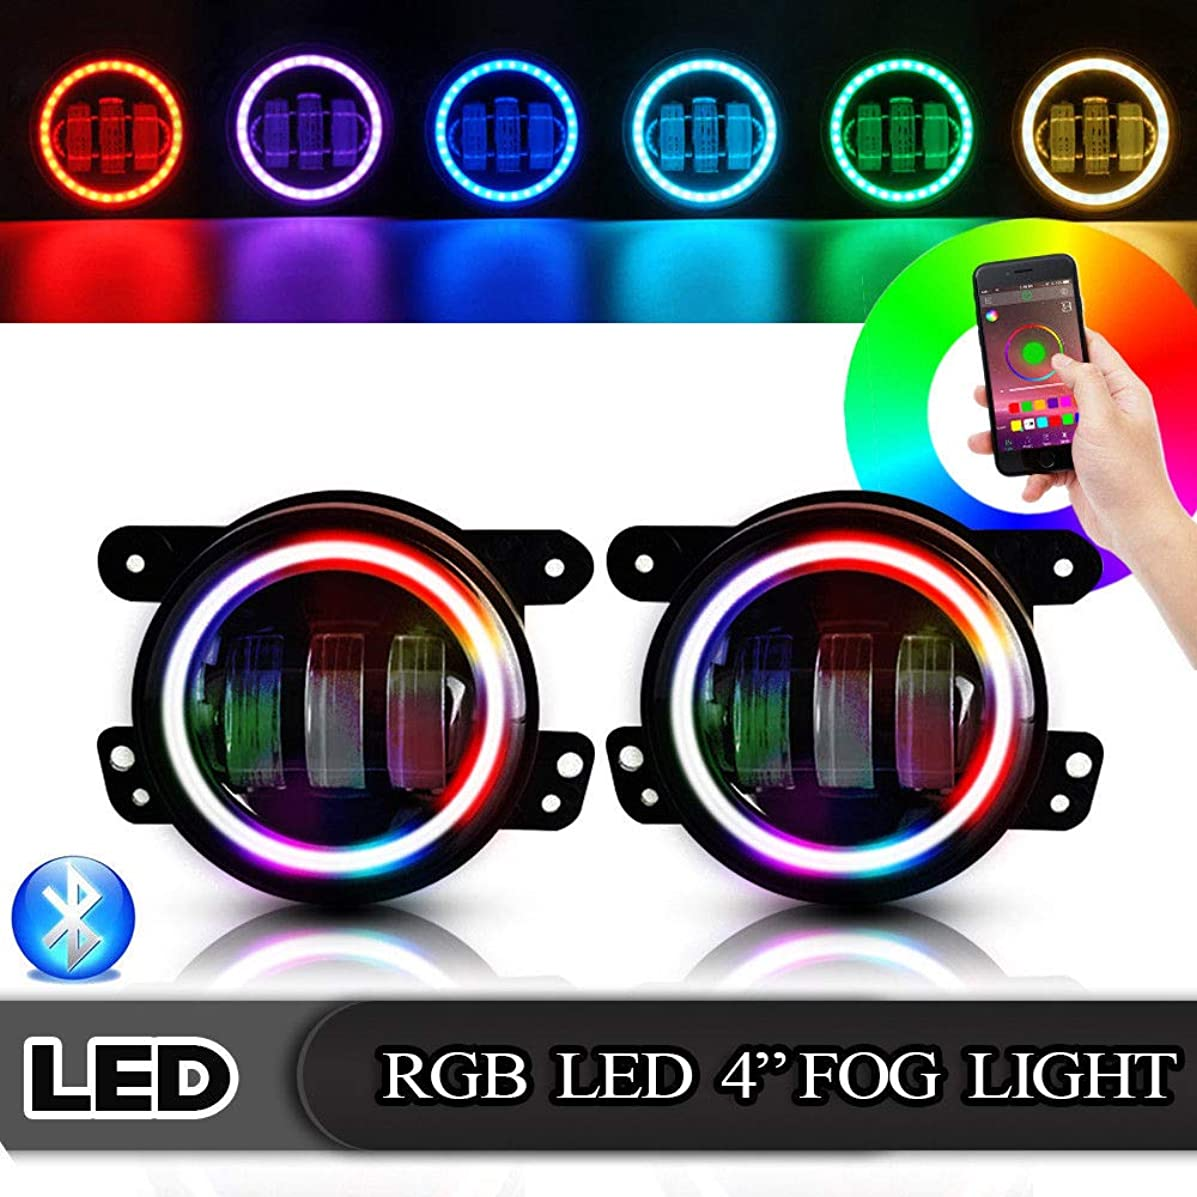 T-Former 4 Inch 30W Led Fog Lights with RGB Halo Ring DRL for Jeep Wrangler 2007-2018 JK JKU Off Road Tractor Boat Driving fog Lamp